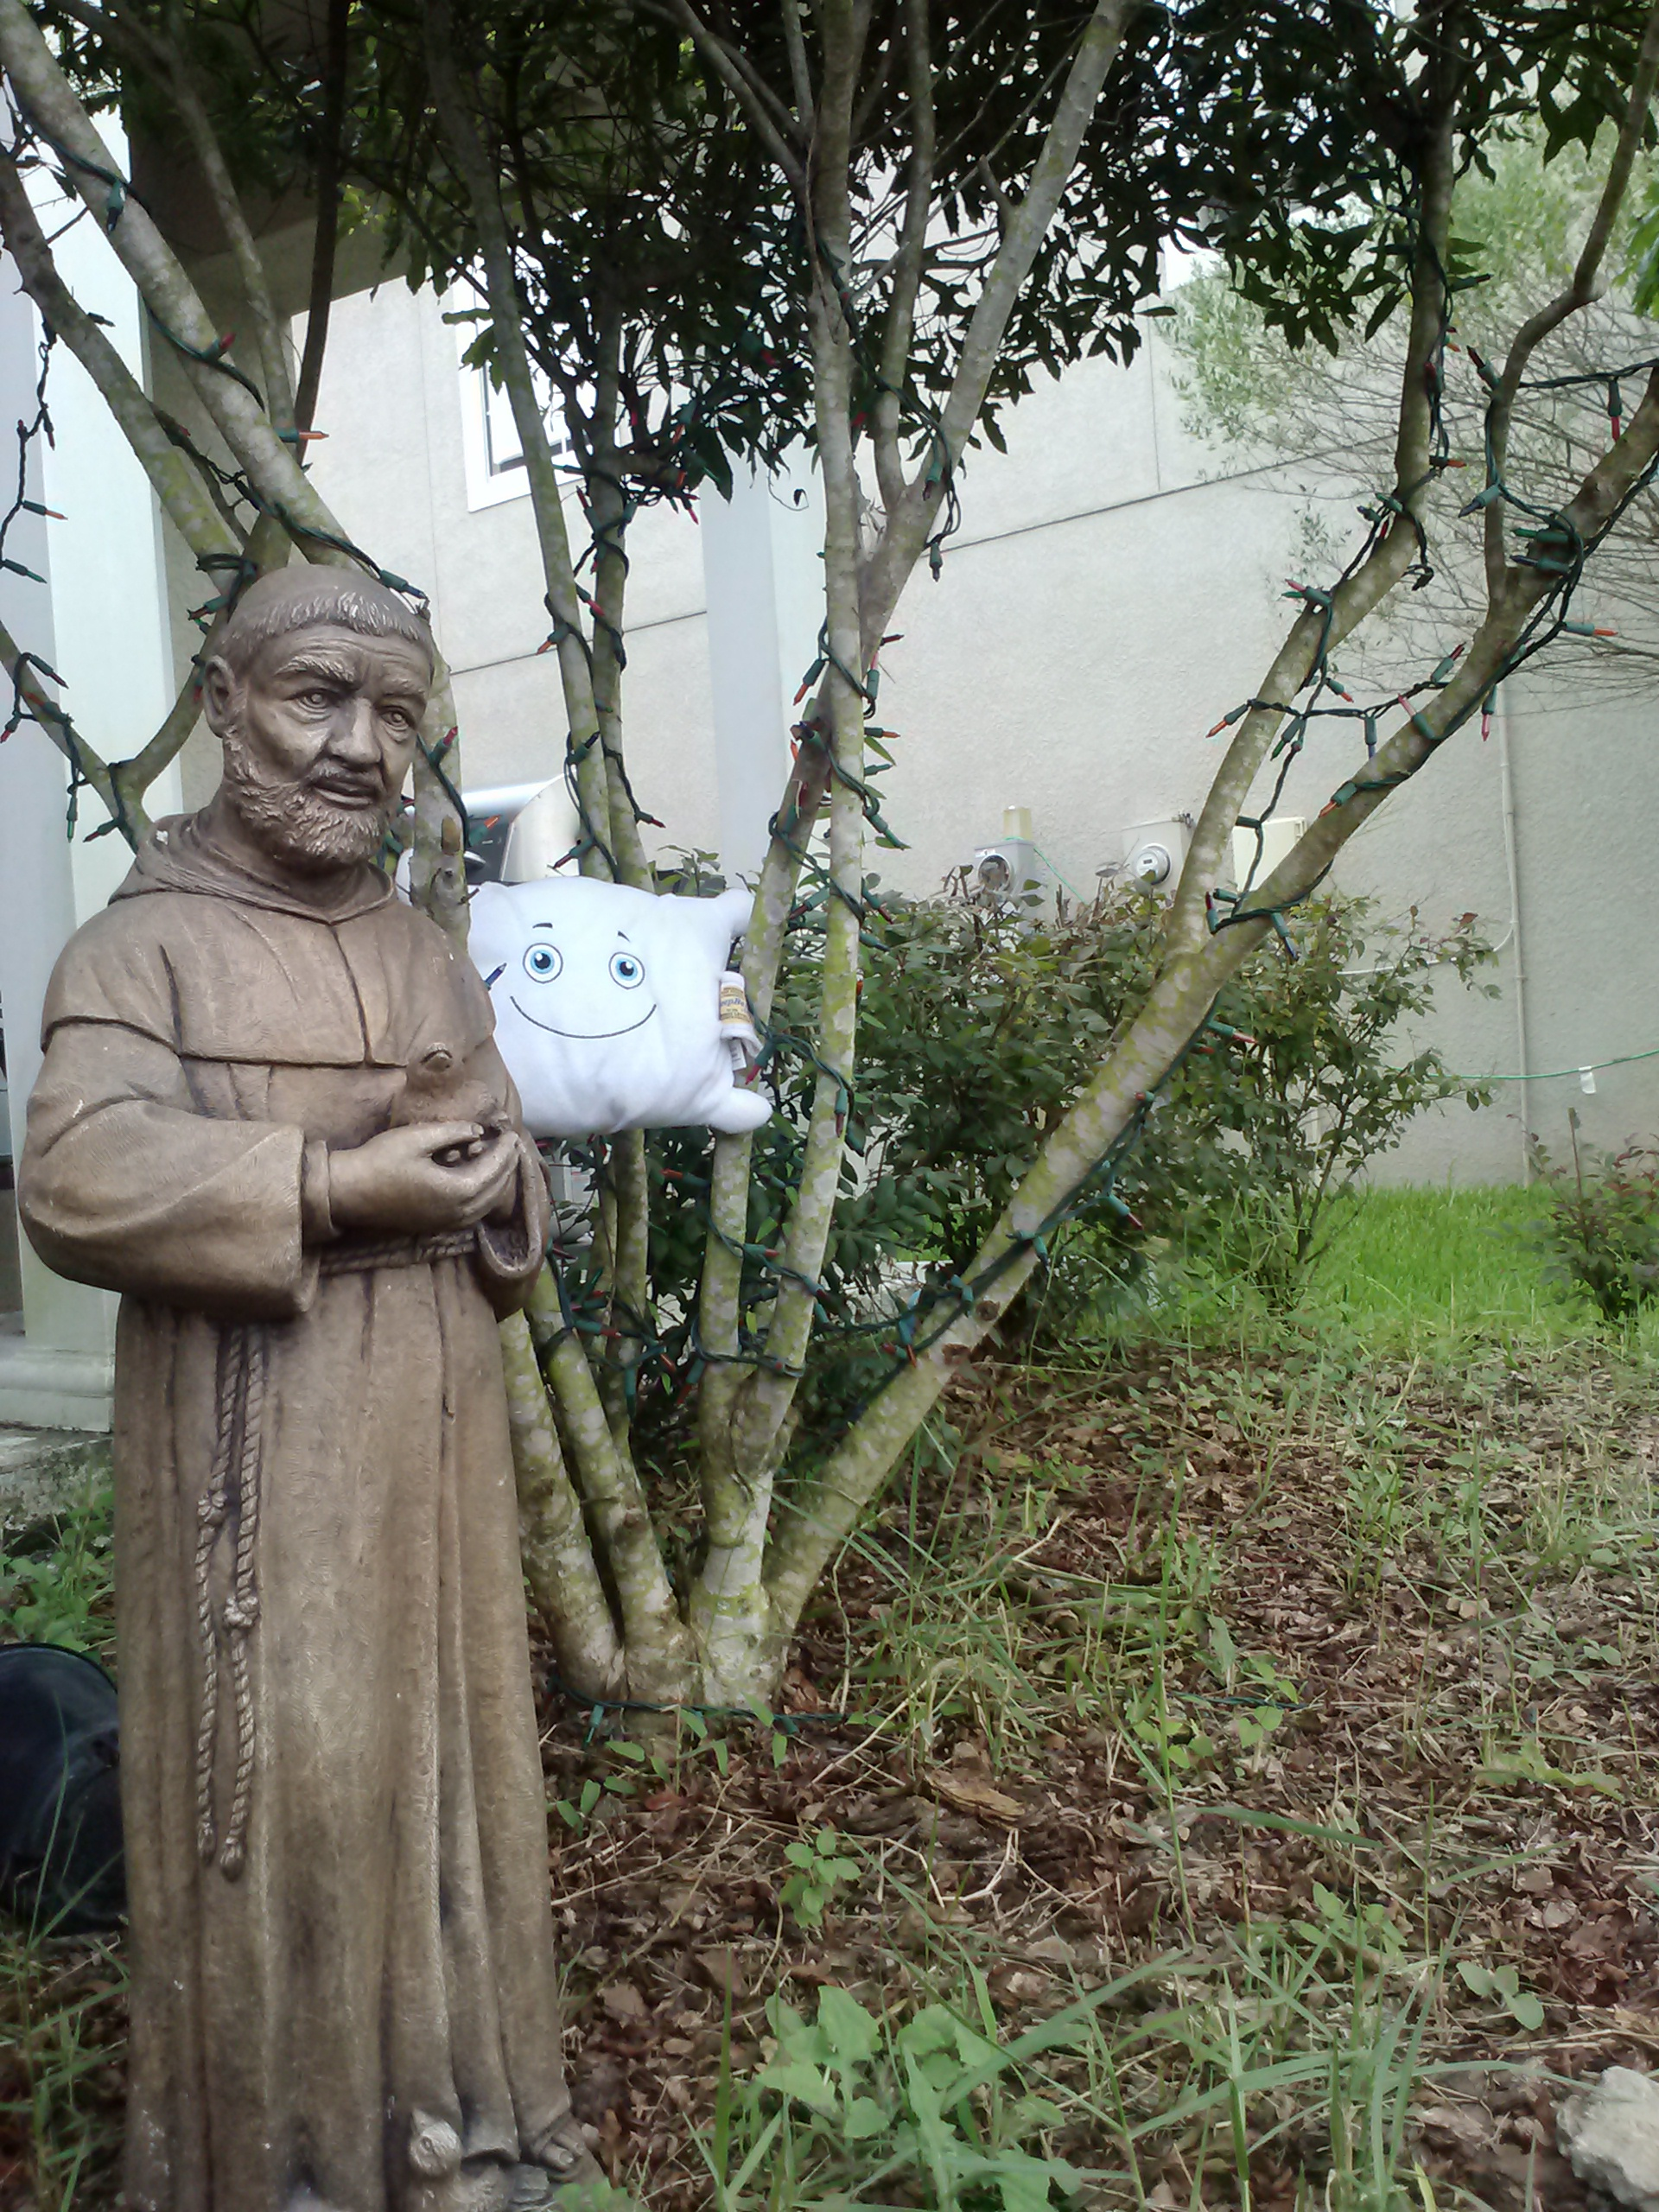 McStuffy with St. Francis